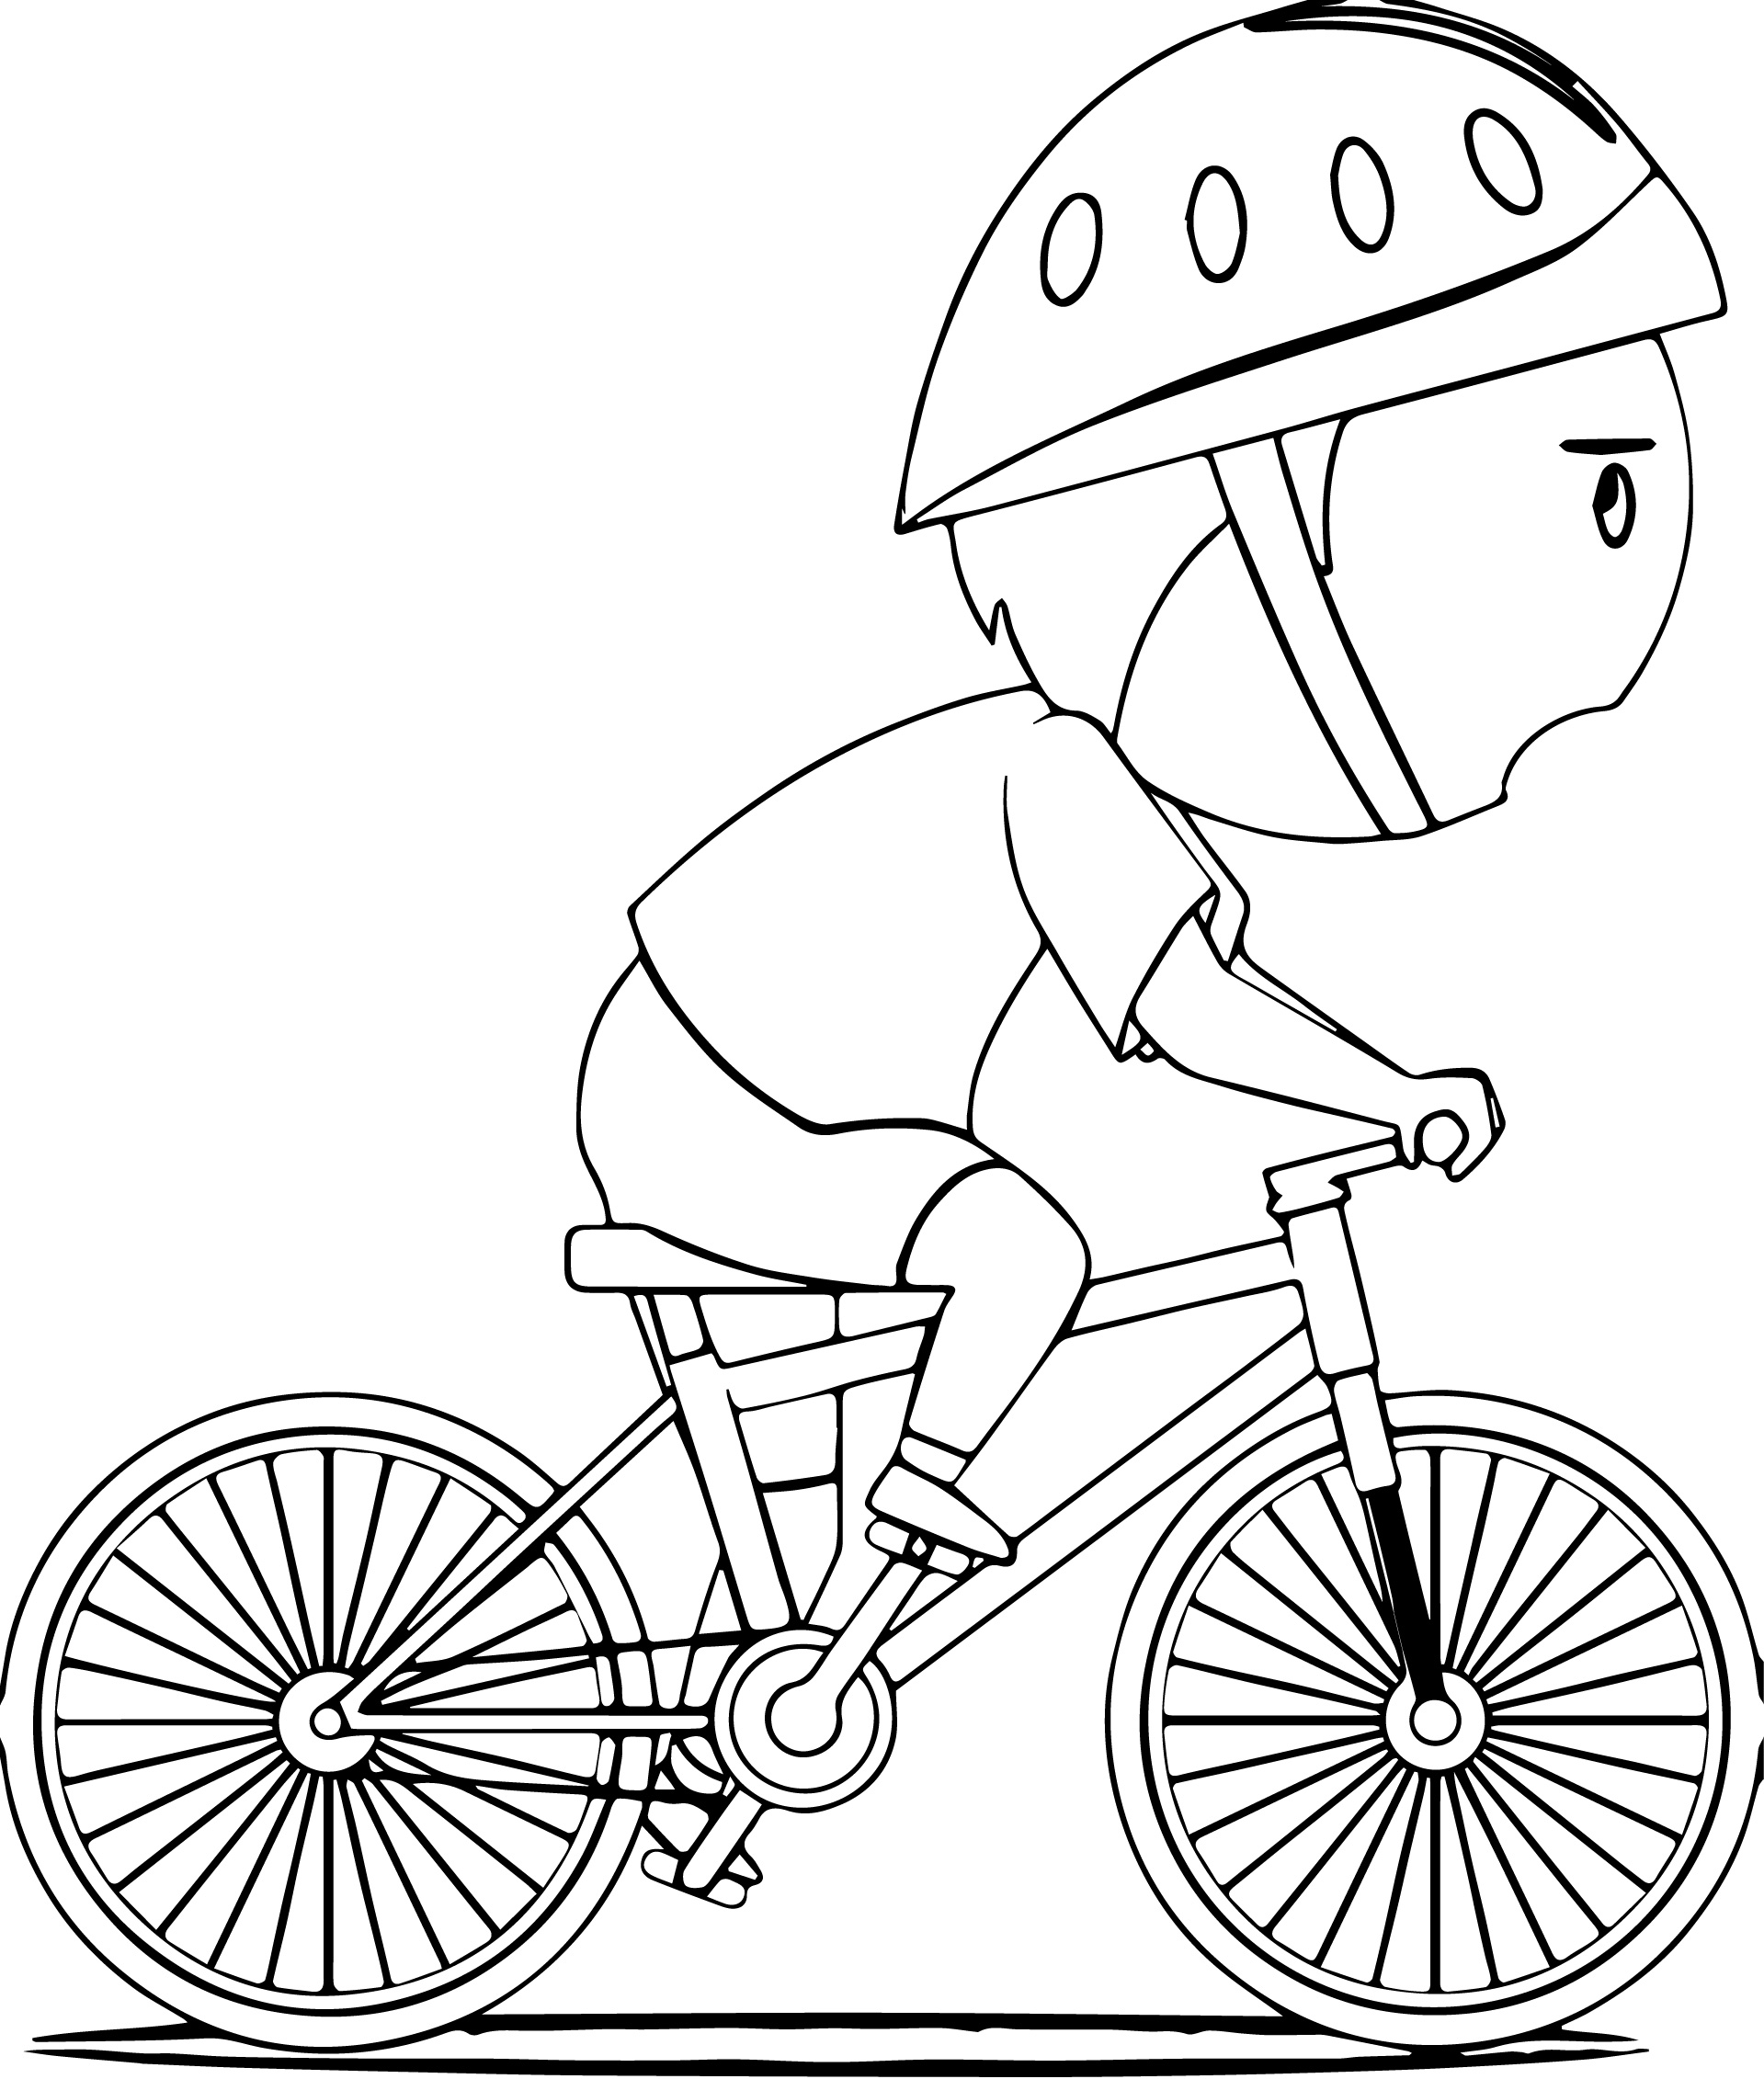 Biycle Coloring Pages